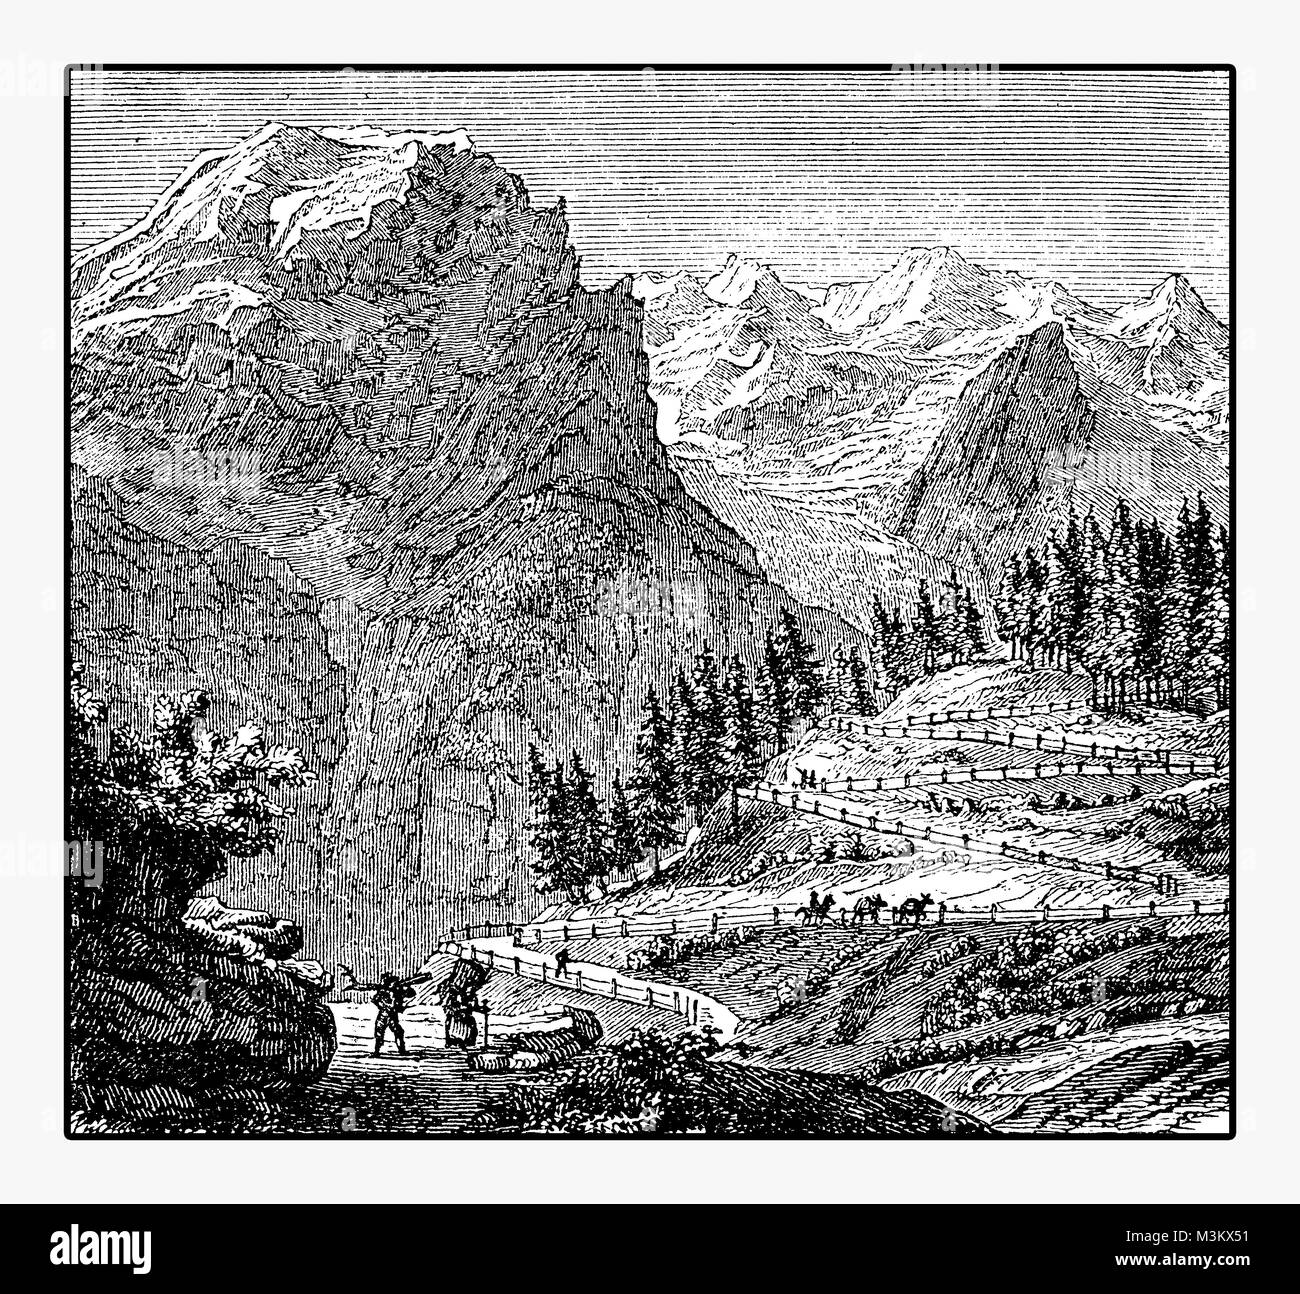 Panoramic view of mountain route and the Ortler, the highest mountain in Eastern Alps, vintage engraving - Stock Image